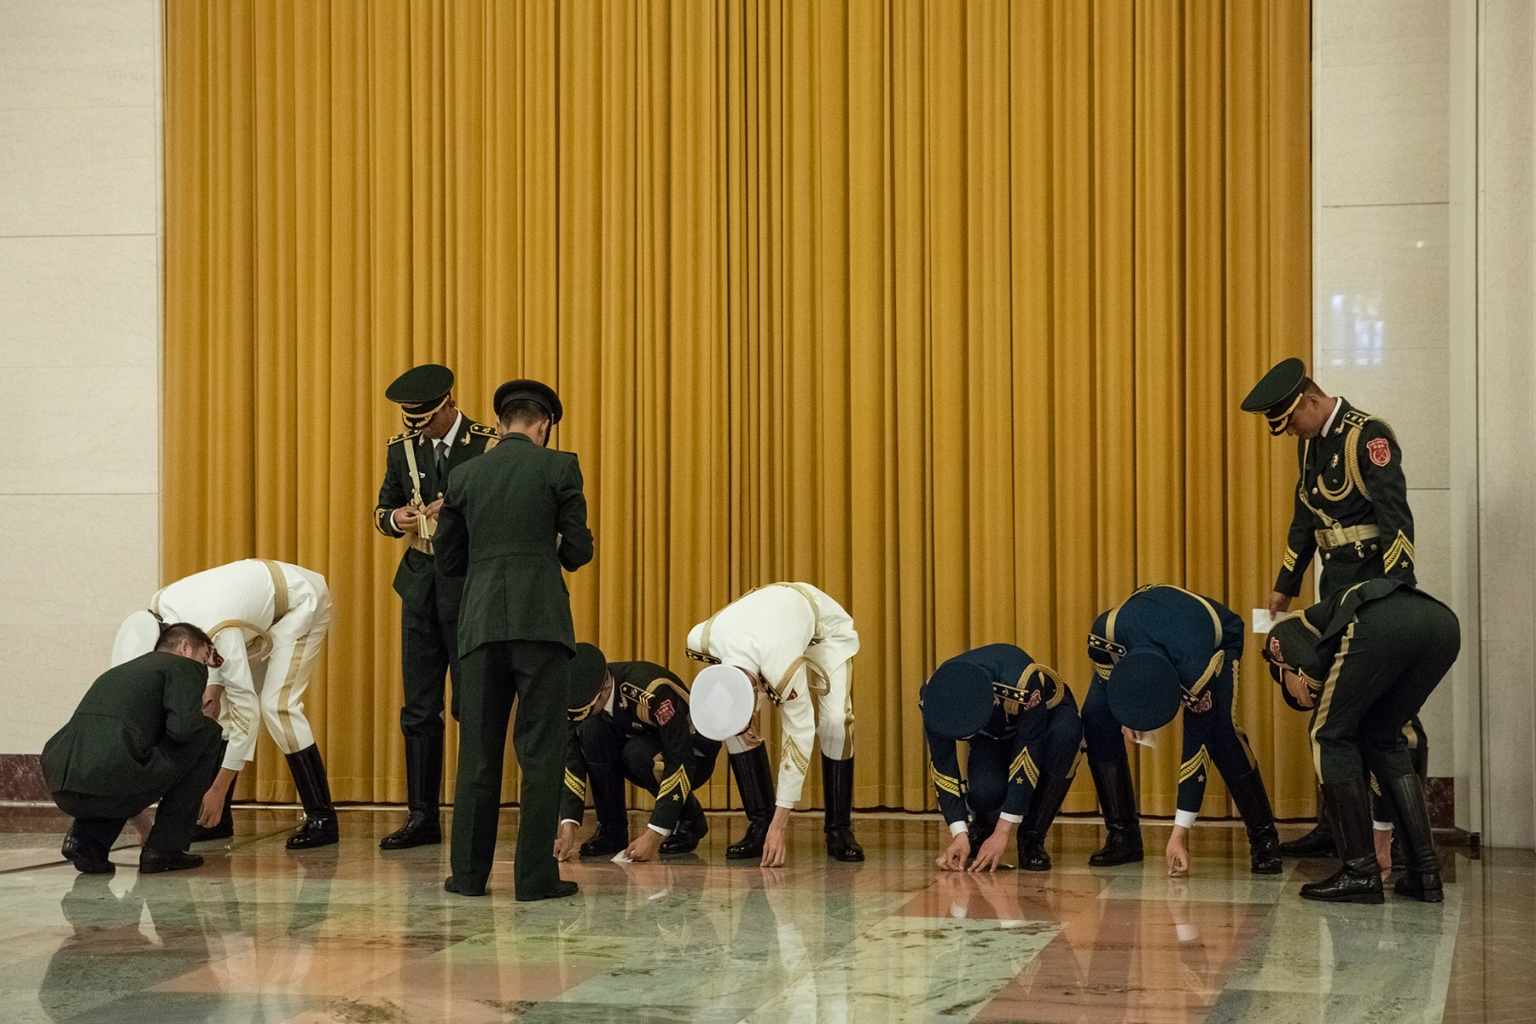 Members of the Chinese People's Liberation Army honor guard prepare for a welcome ceremony for Ivory Coast President Alassane Ouattara at the Great Hall of the People in Beijing on Aug. 30. ROMAN PILIPEY/AFP/GETTY IMAGES